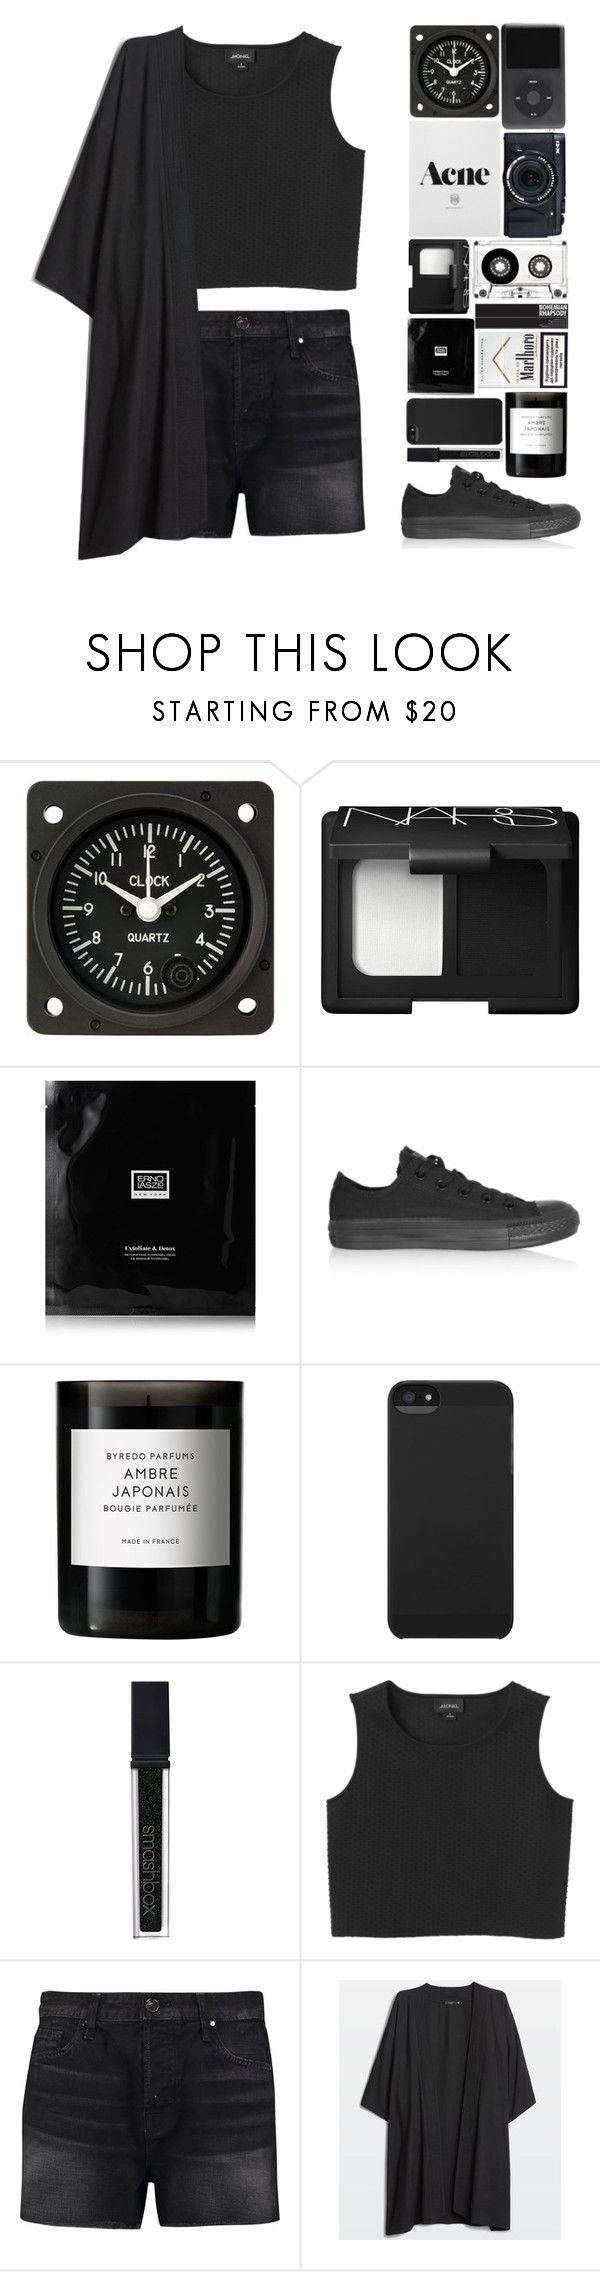 """""""In her eyes there's no lies,there's no question, she's not in a disguise"""" by onedirectiondress ❤ liked on Polyvore featuring Fujifilm, NARS Cosmetics, Erno Laszlo, Converse, Byredo, Incase, Smashbox, Monki and J Brand"""